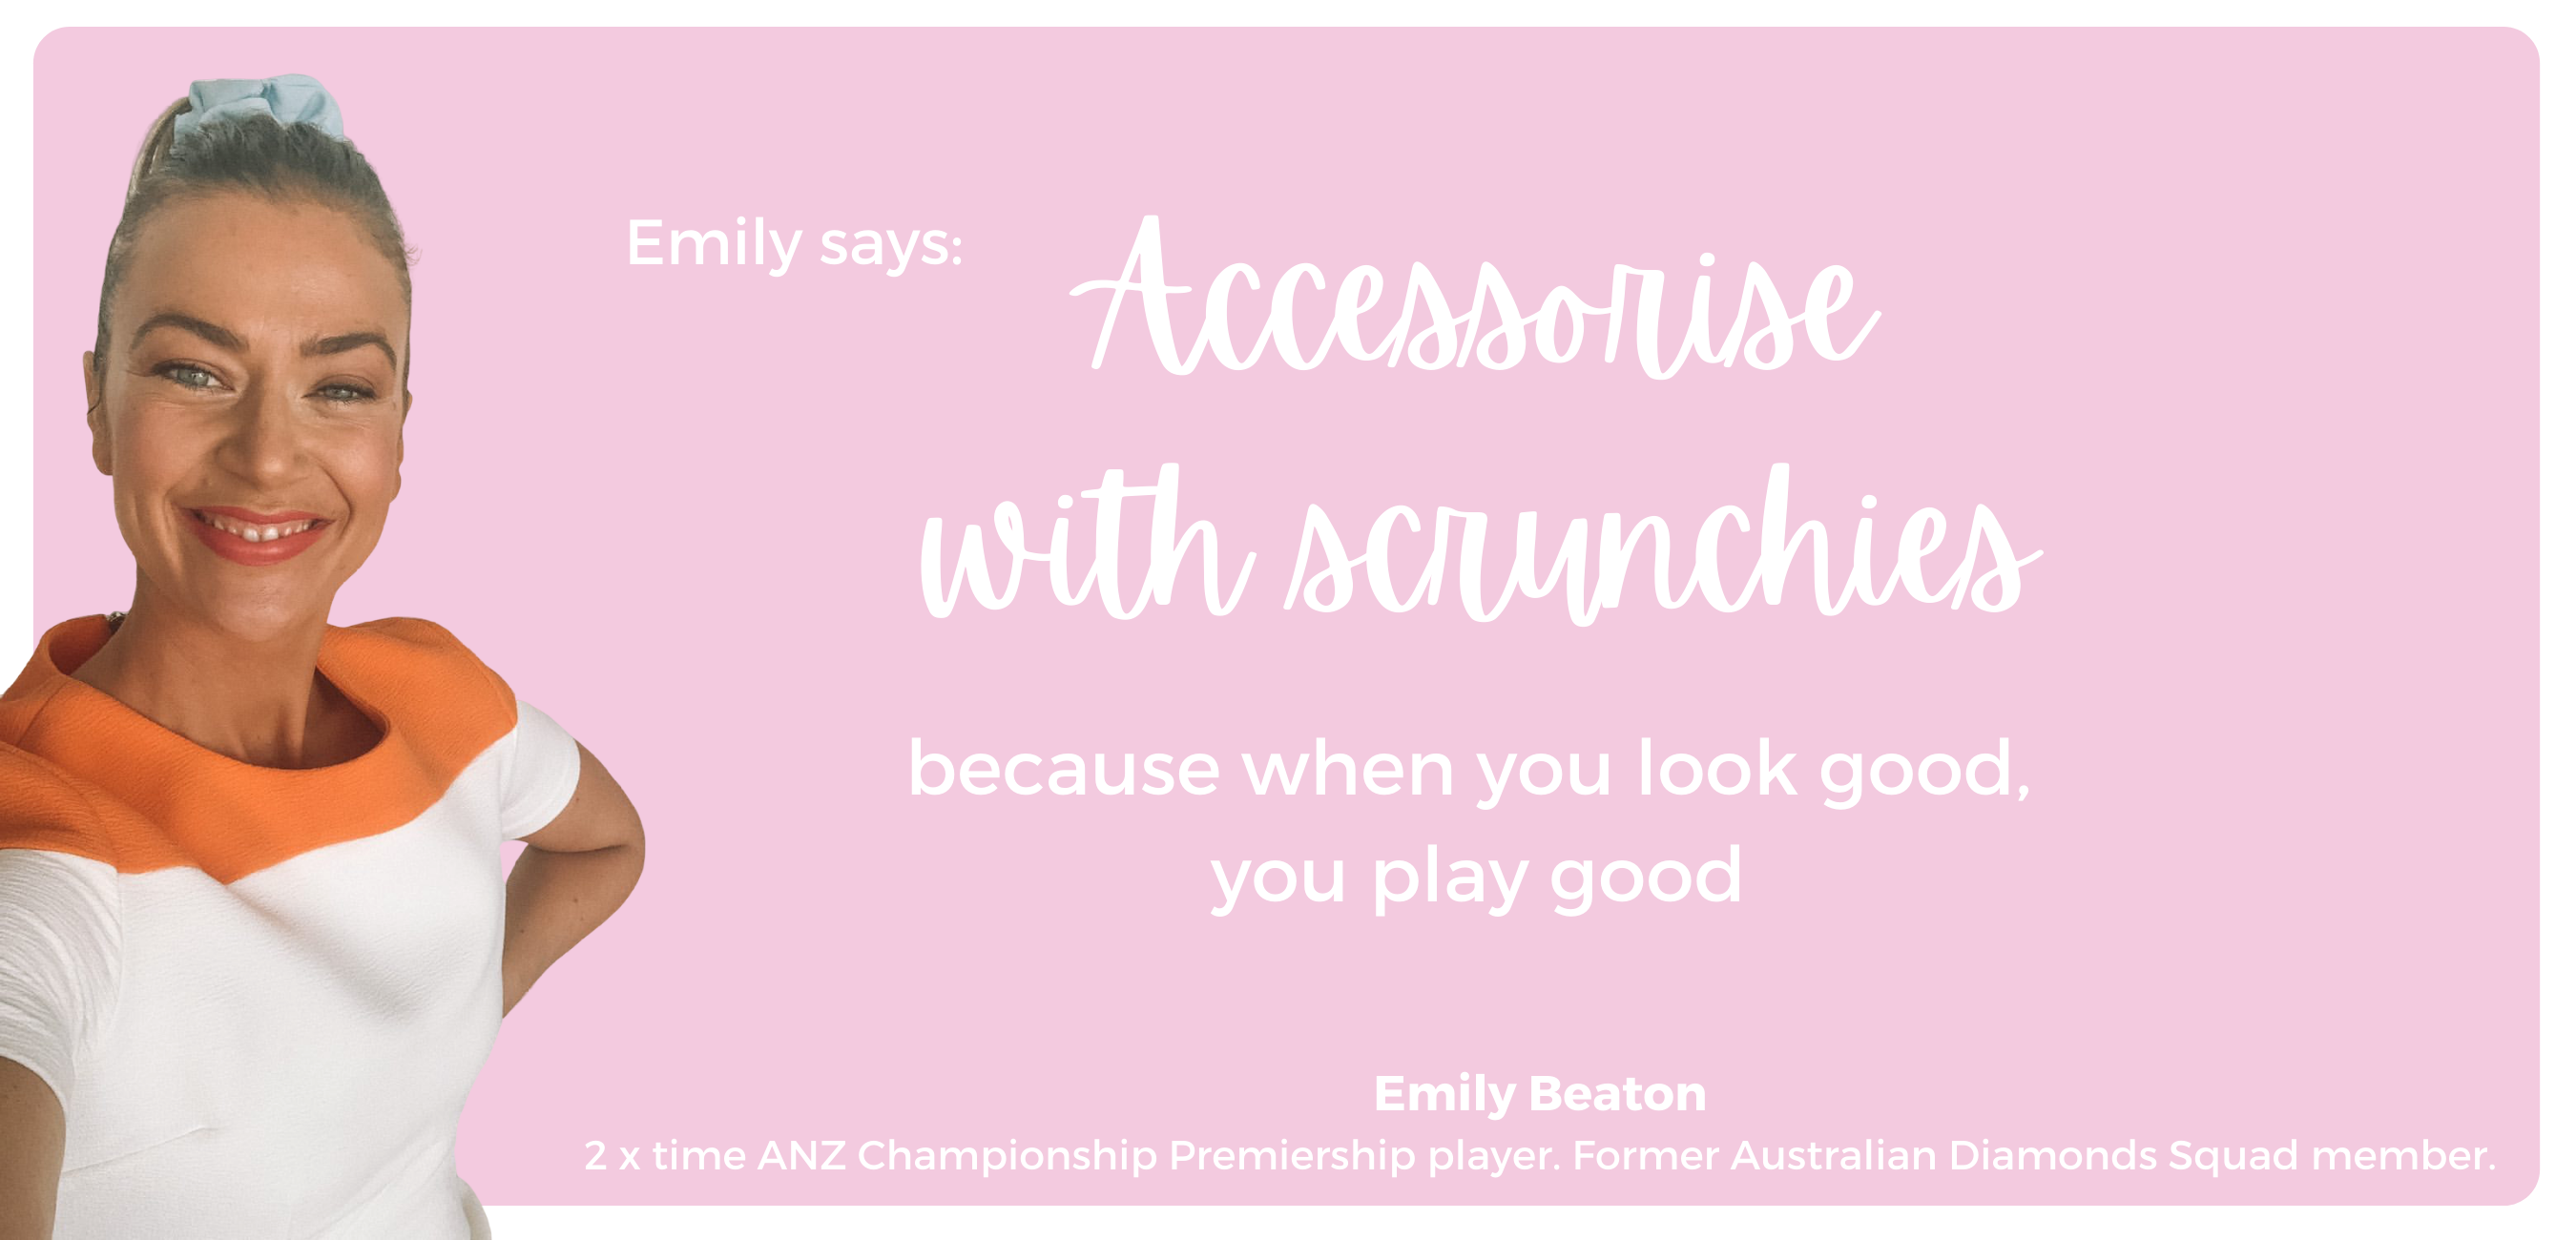 emily beaton says, accessorise with scrunchies, because when you look good, you play good